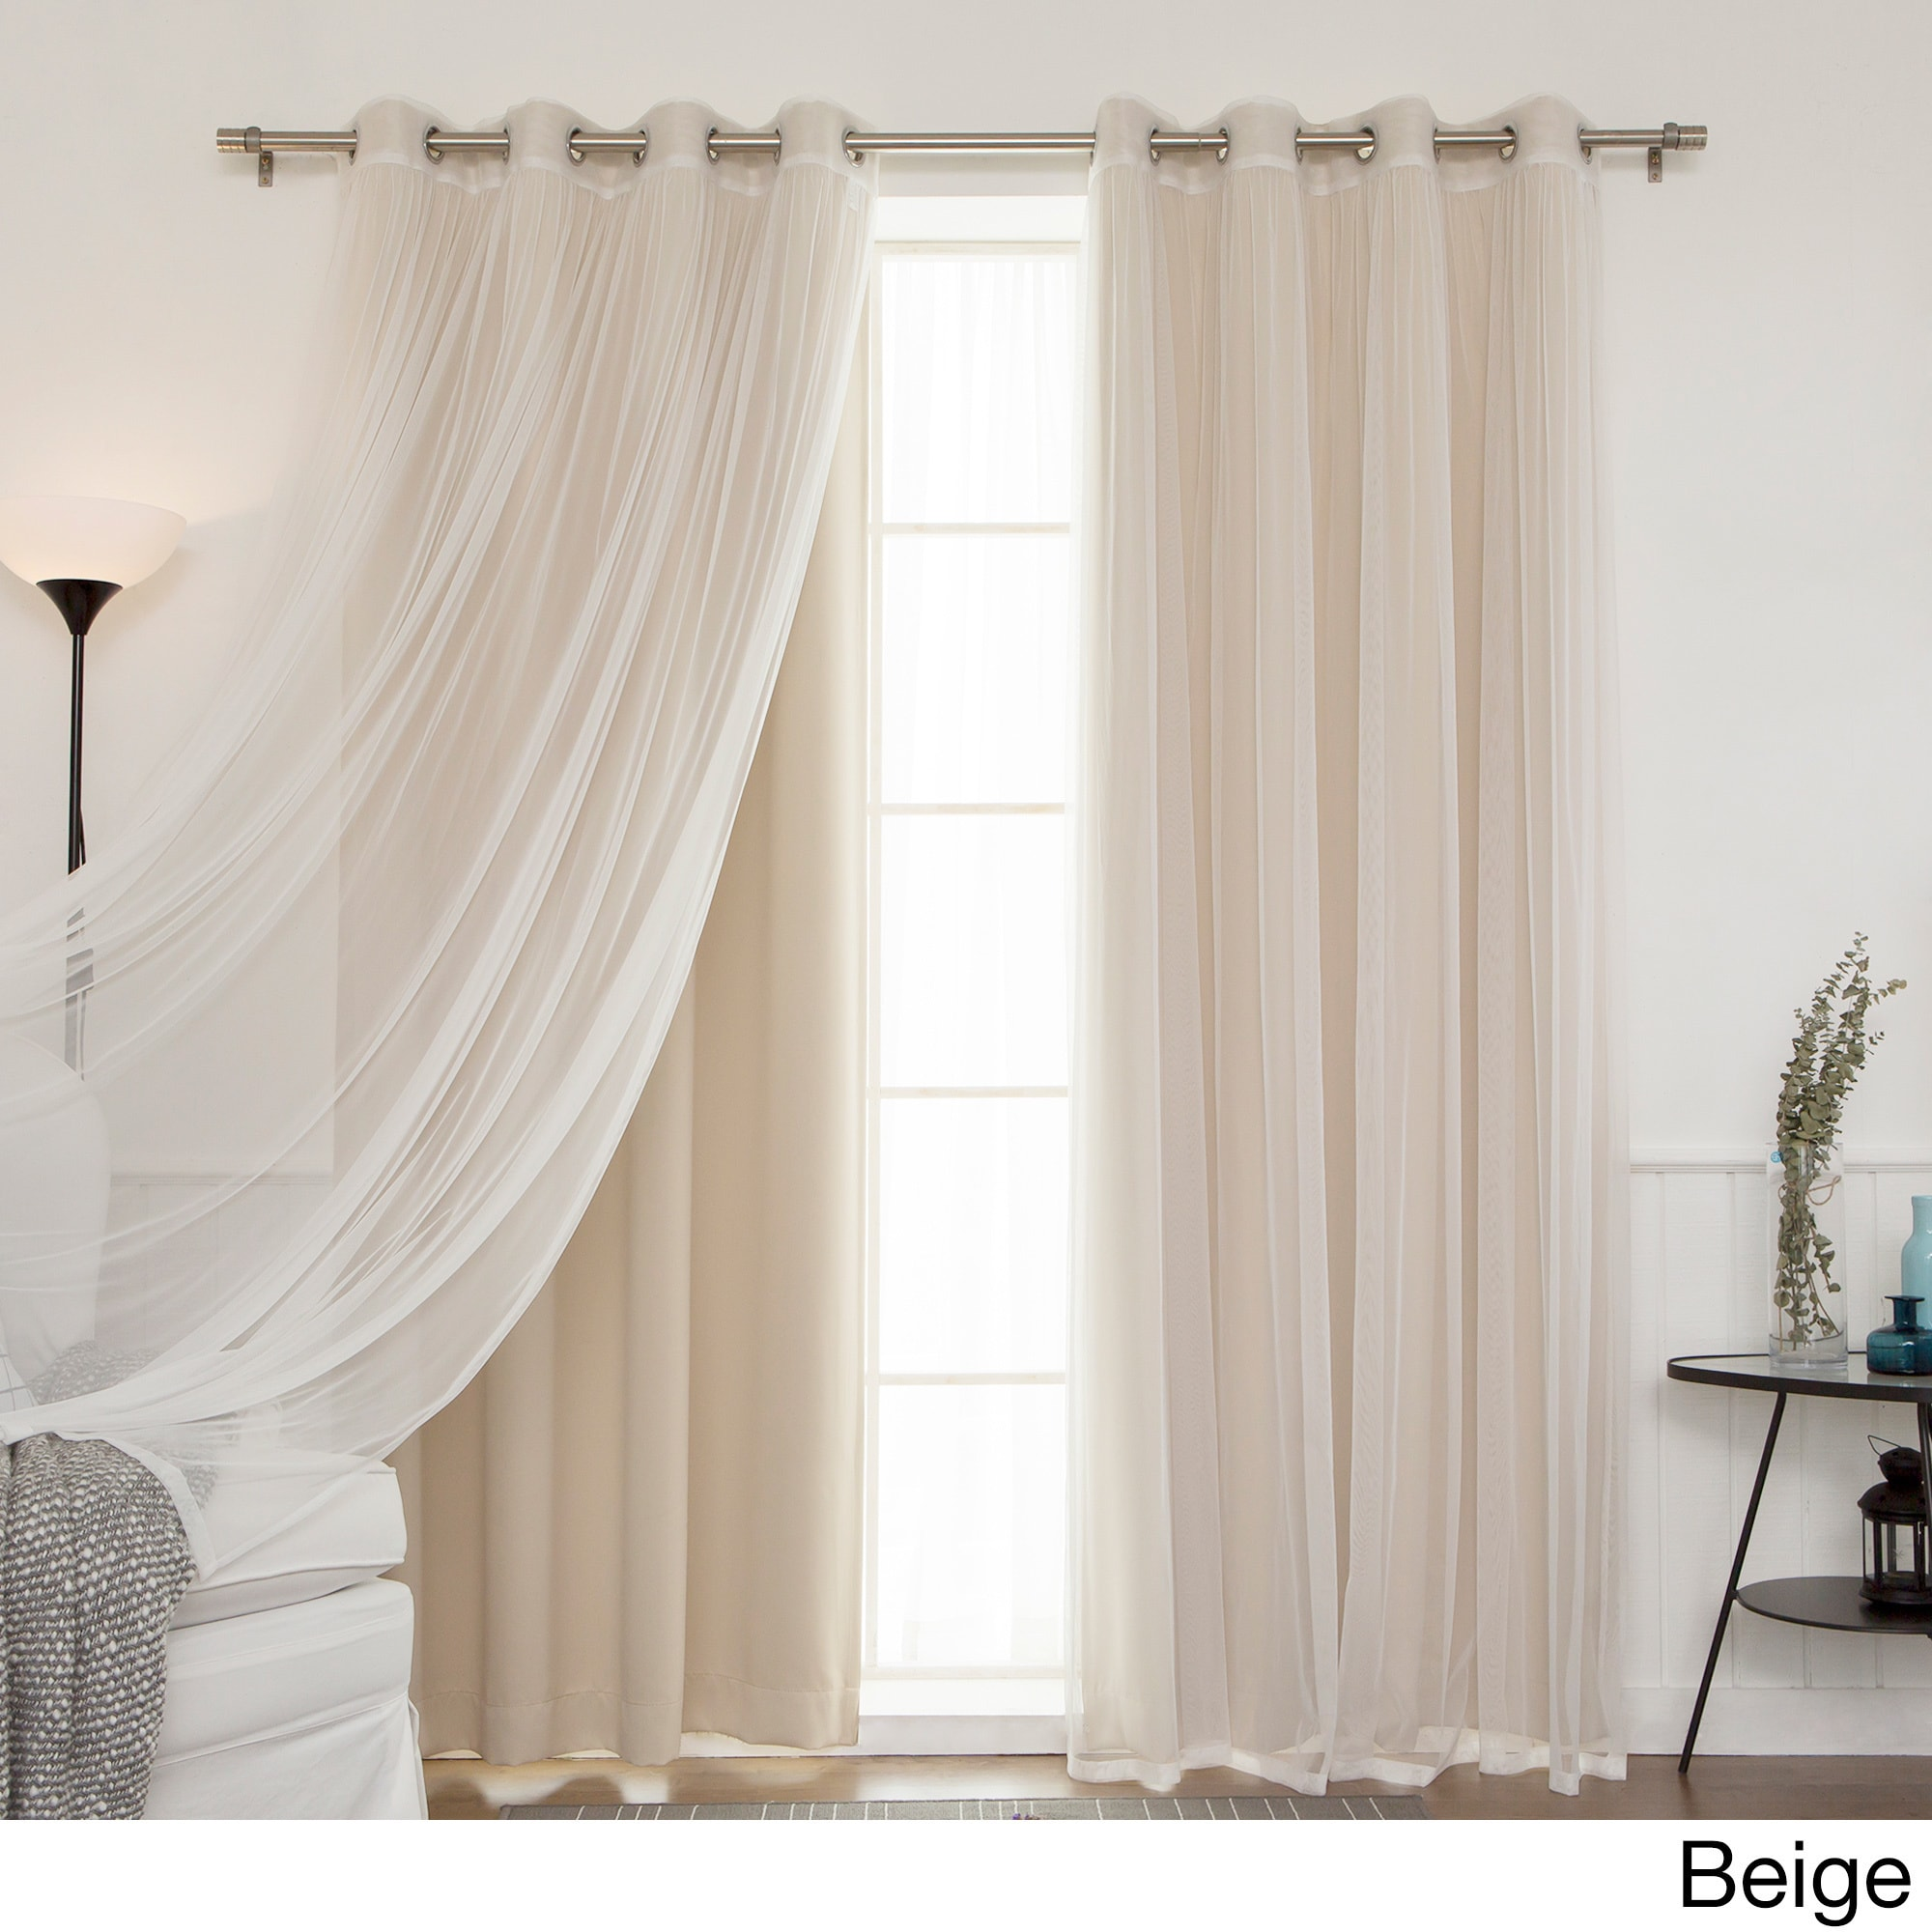 94 Inch Blackout Curtains Aurora Home Mix And Match Blackout Tulle Lace Sheer 4 Piece Curtain Panel Set